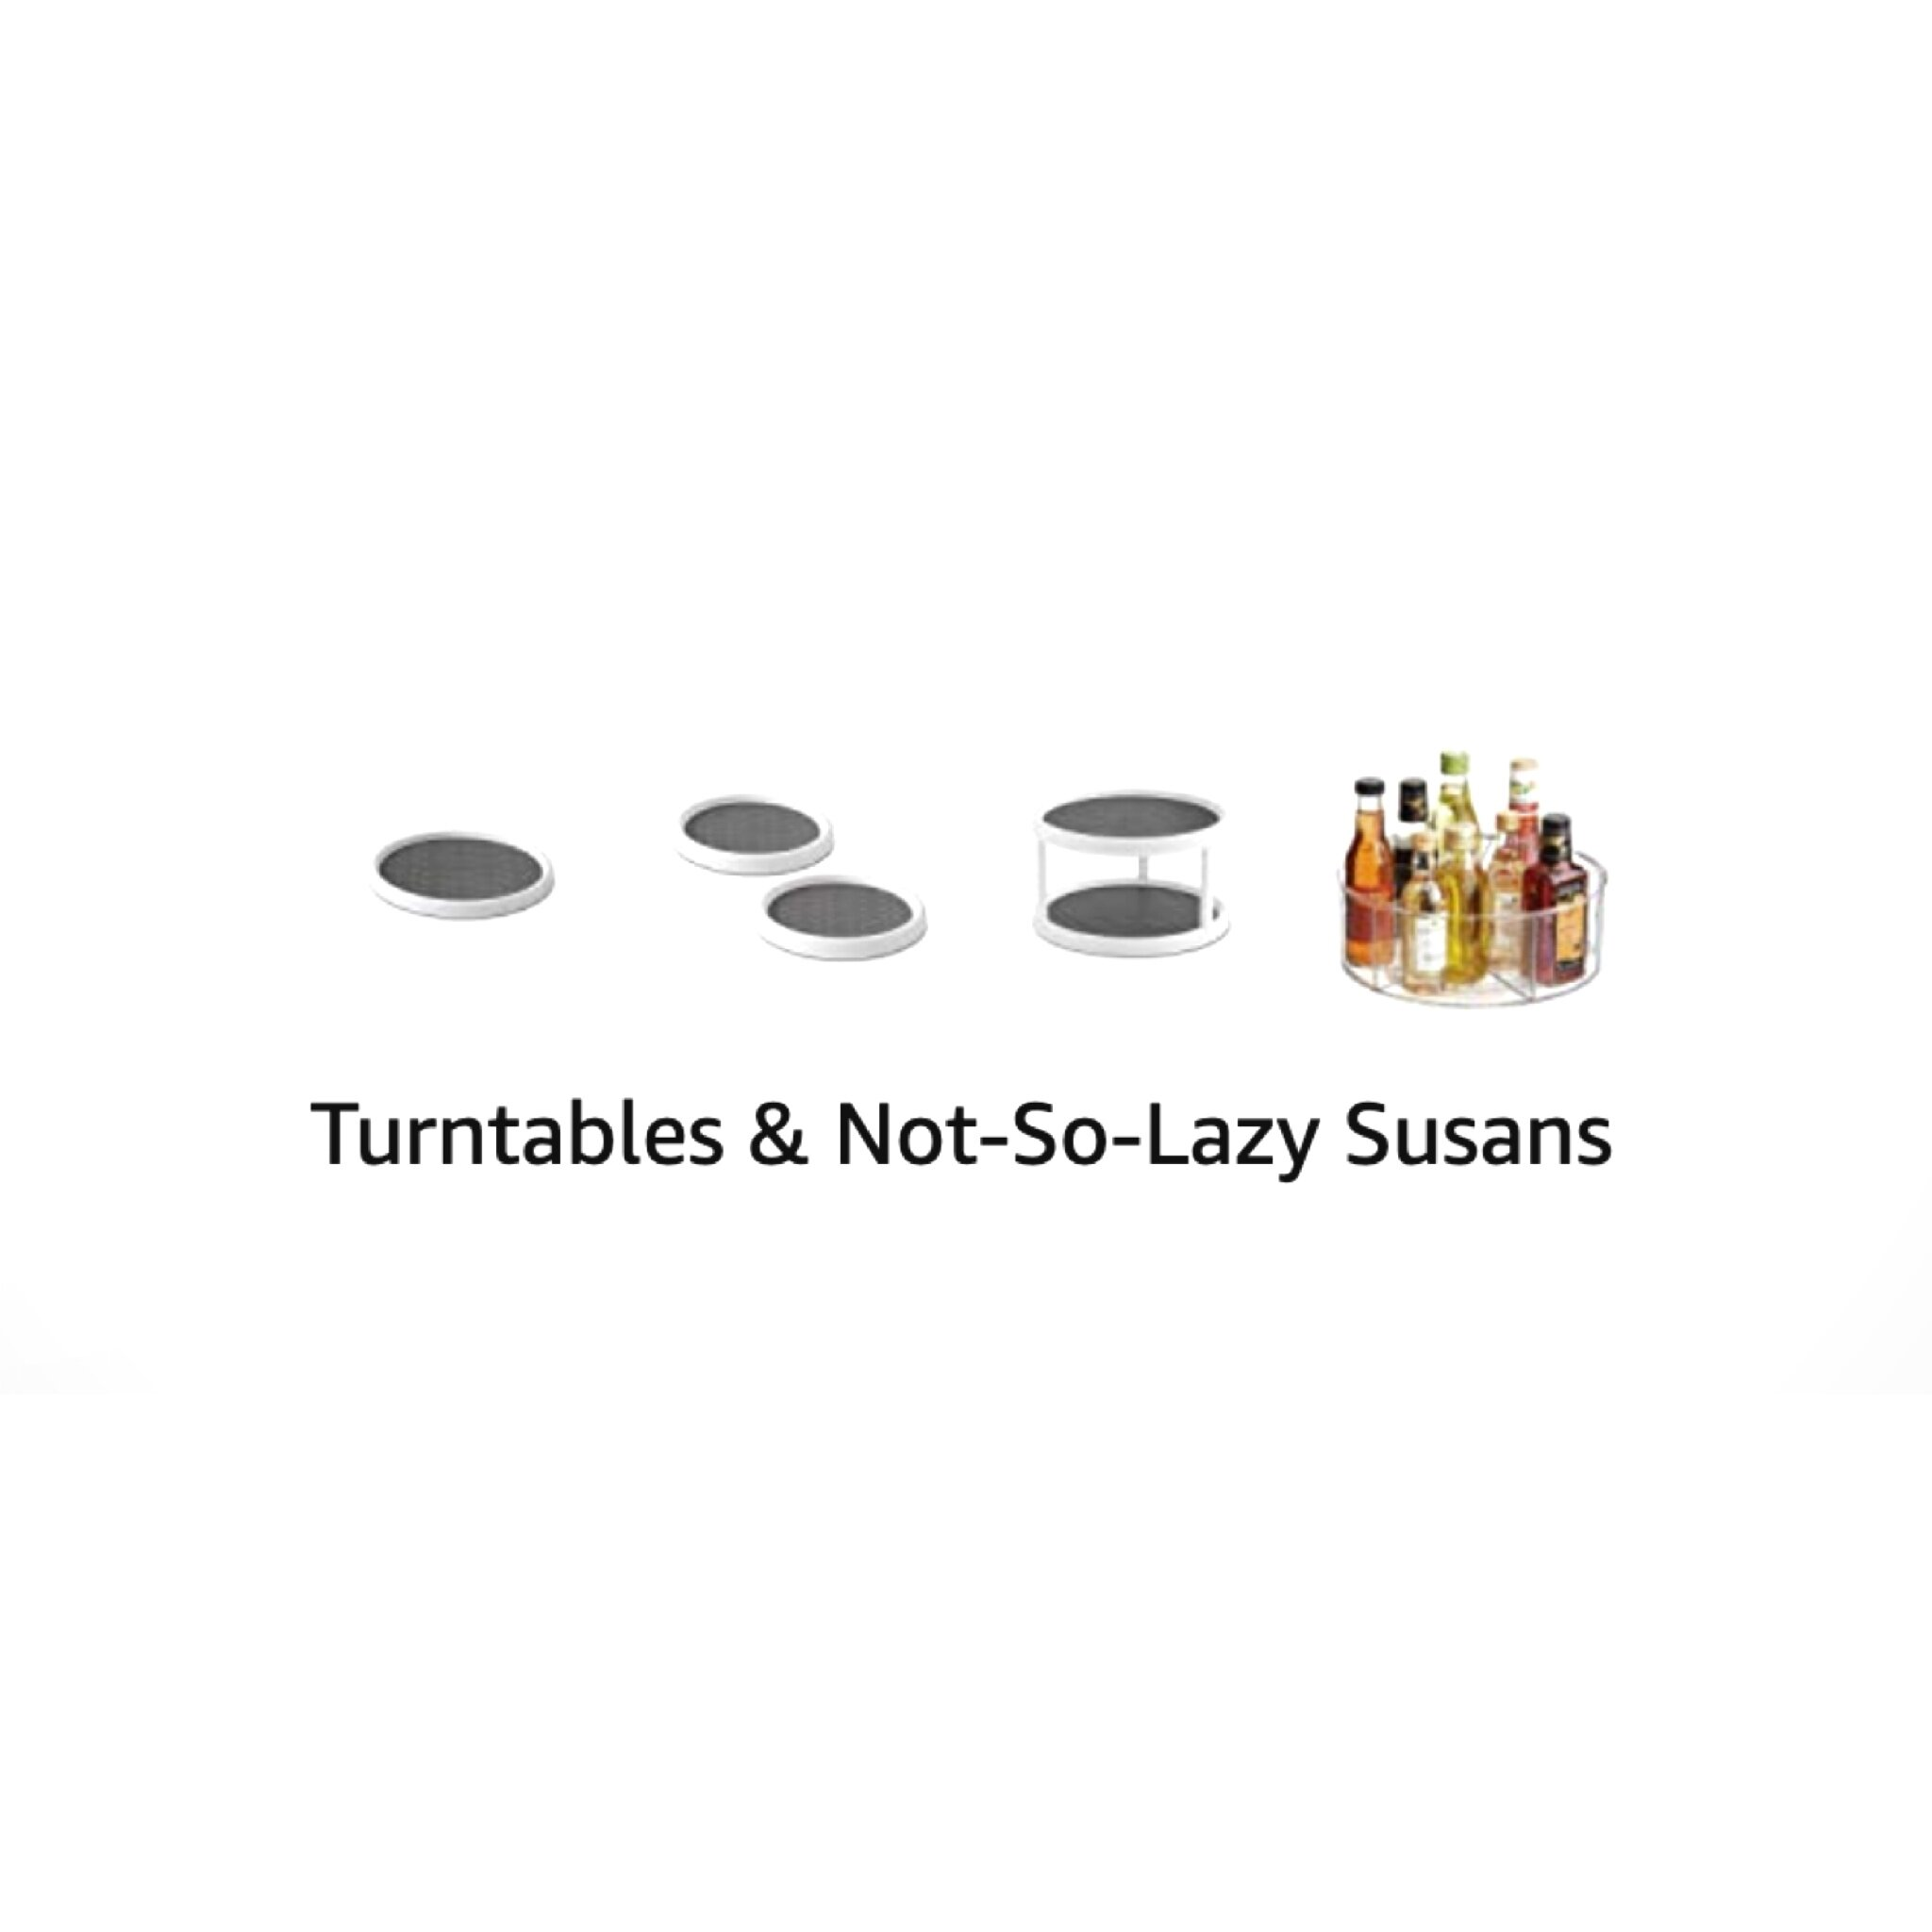 turntables and not-so-lazy susans